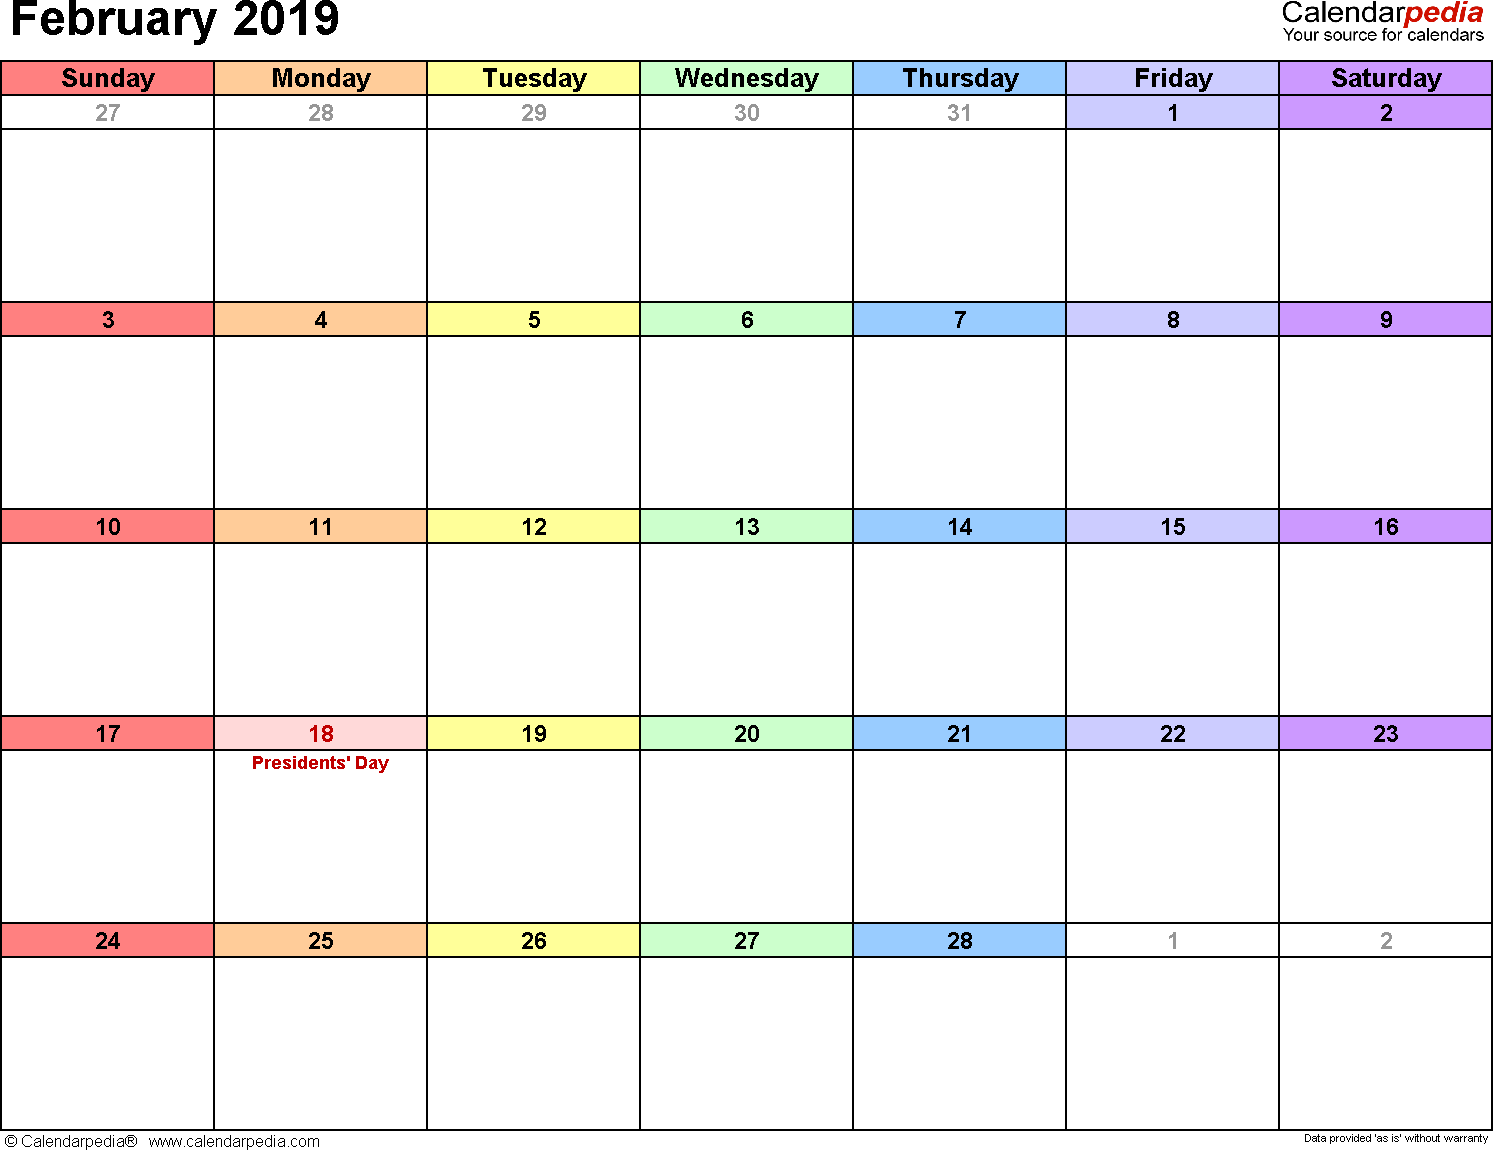 February Weekly Calendar 2019 February 2019 Calendars for Word, Excel & PDF